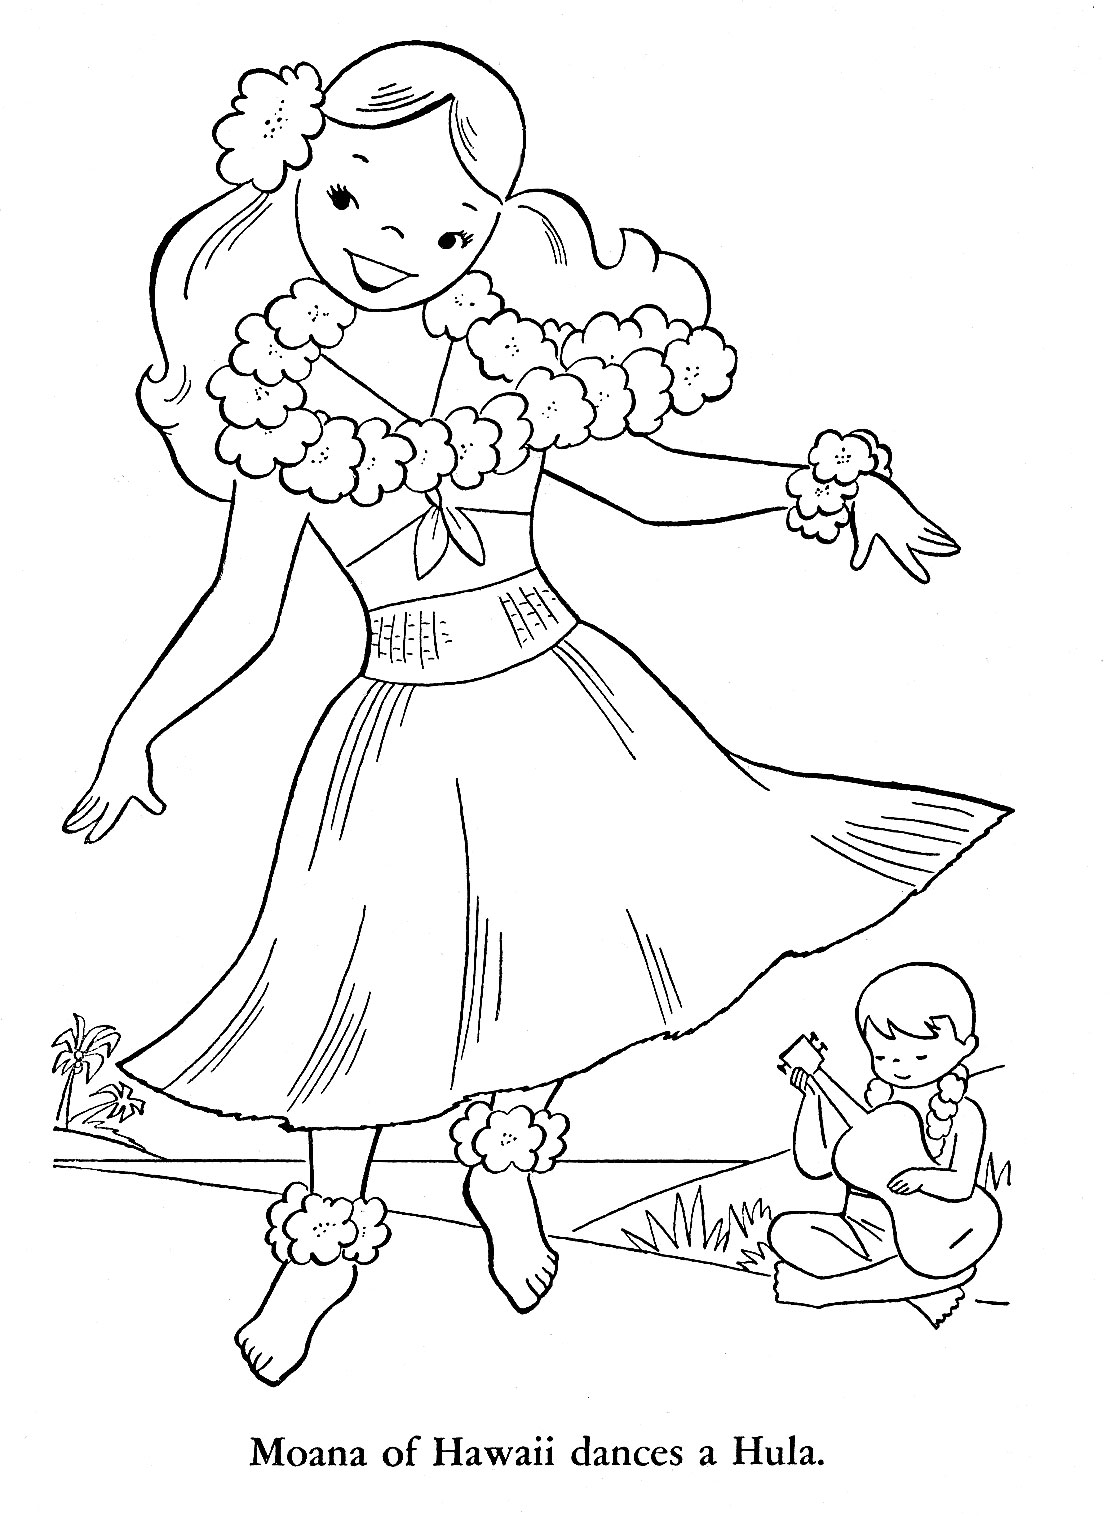 hawaii coloring pages for children - photo#20